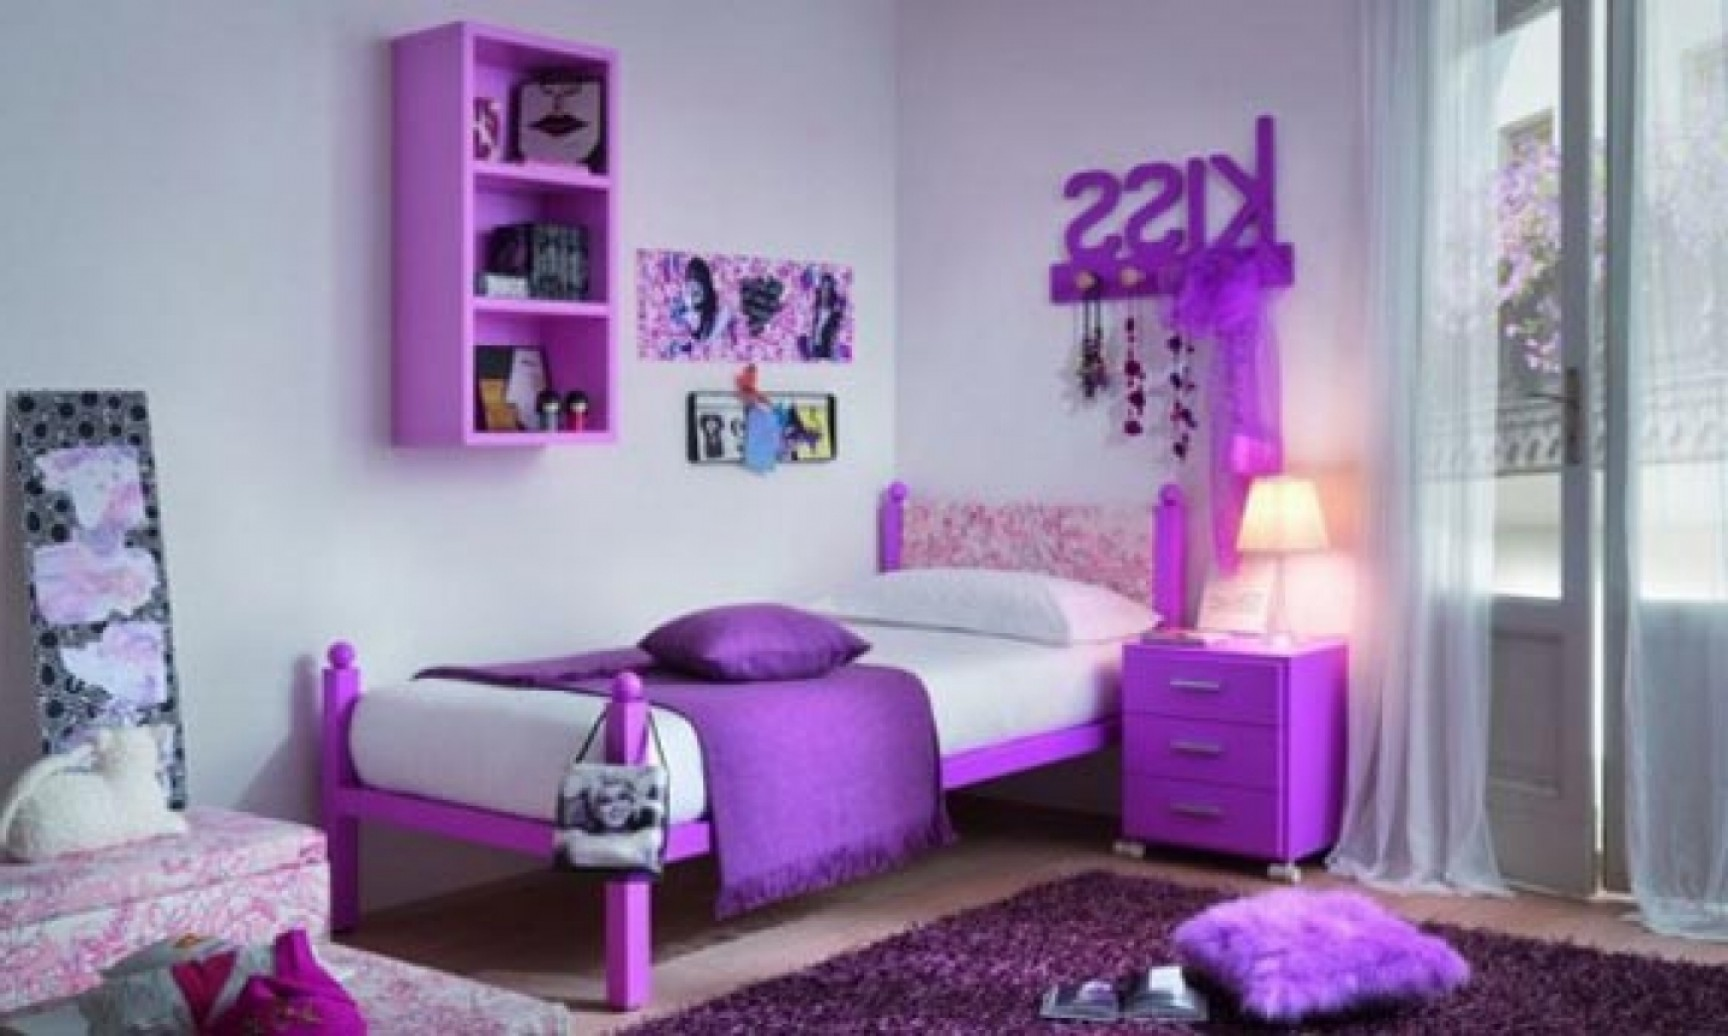 5 Tips in Small Bedroom Ideas For Teenagers - jpeo.com on Teenage Small Bedroom Ideas  id=52977